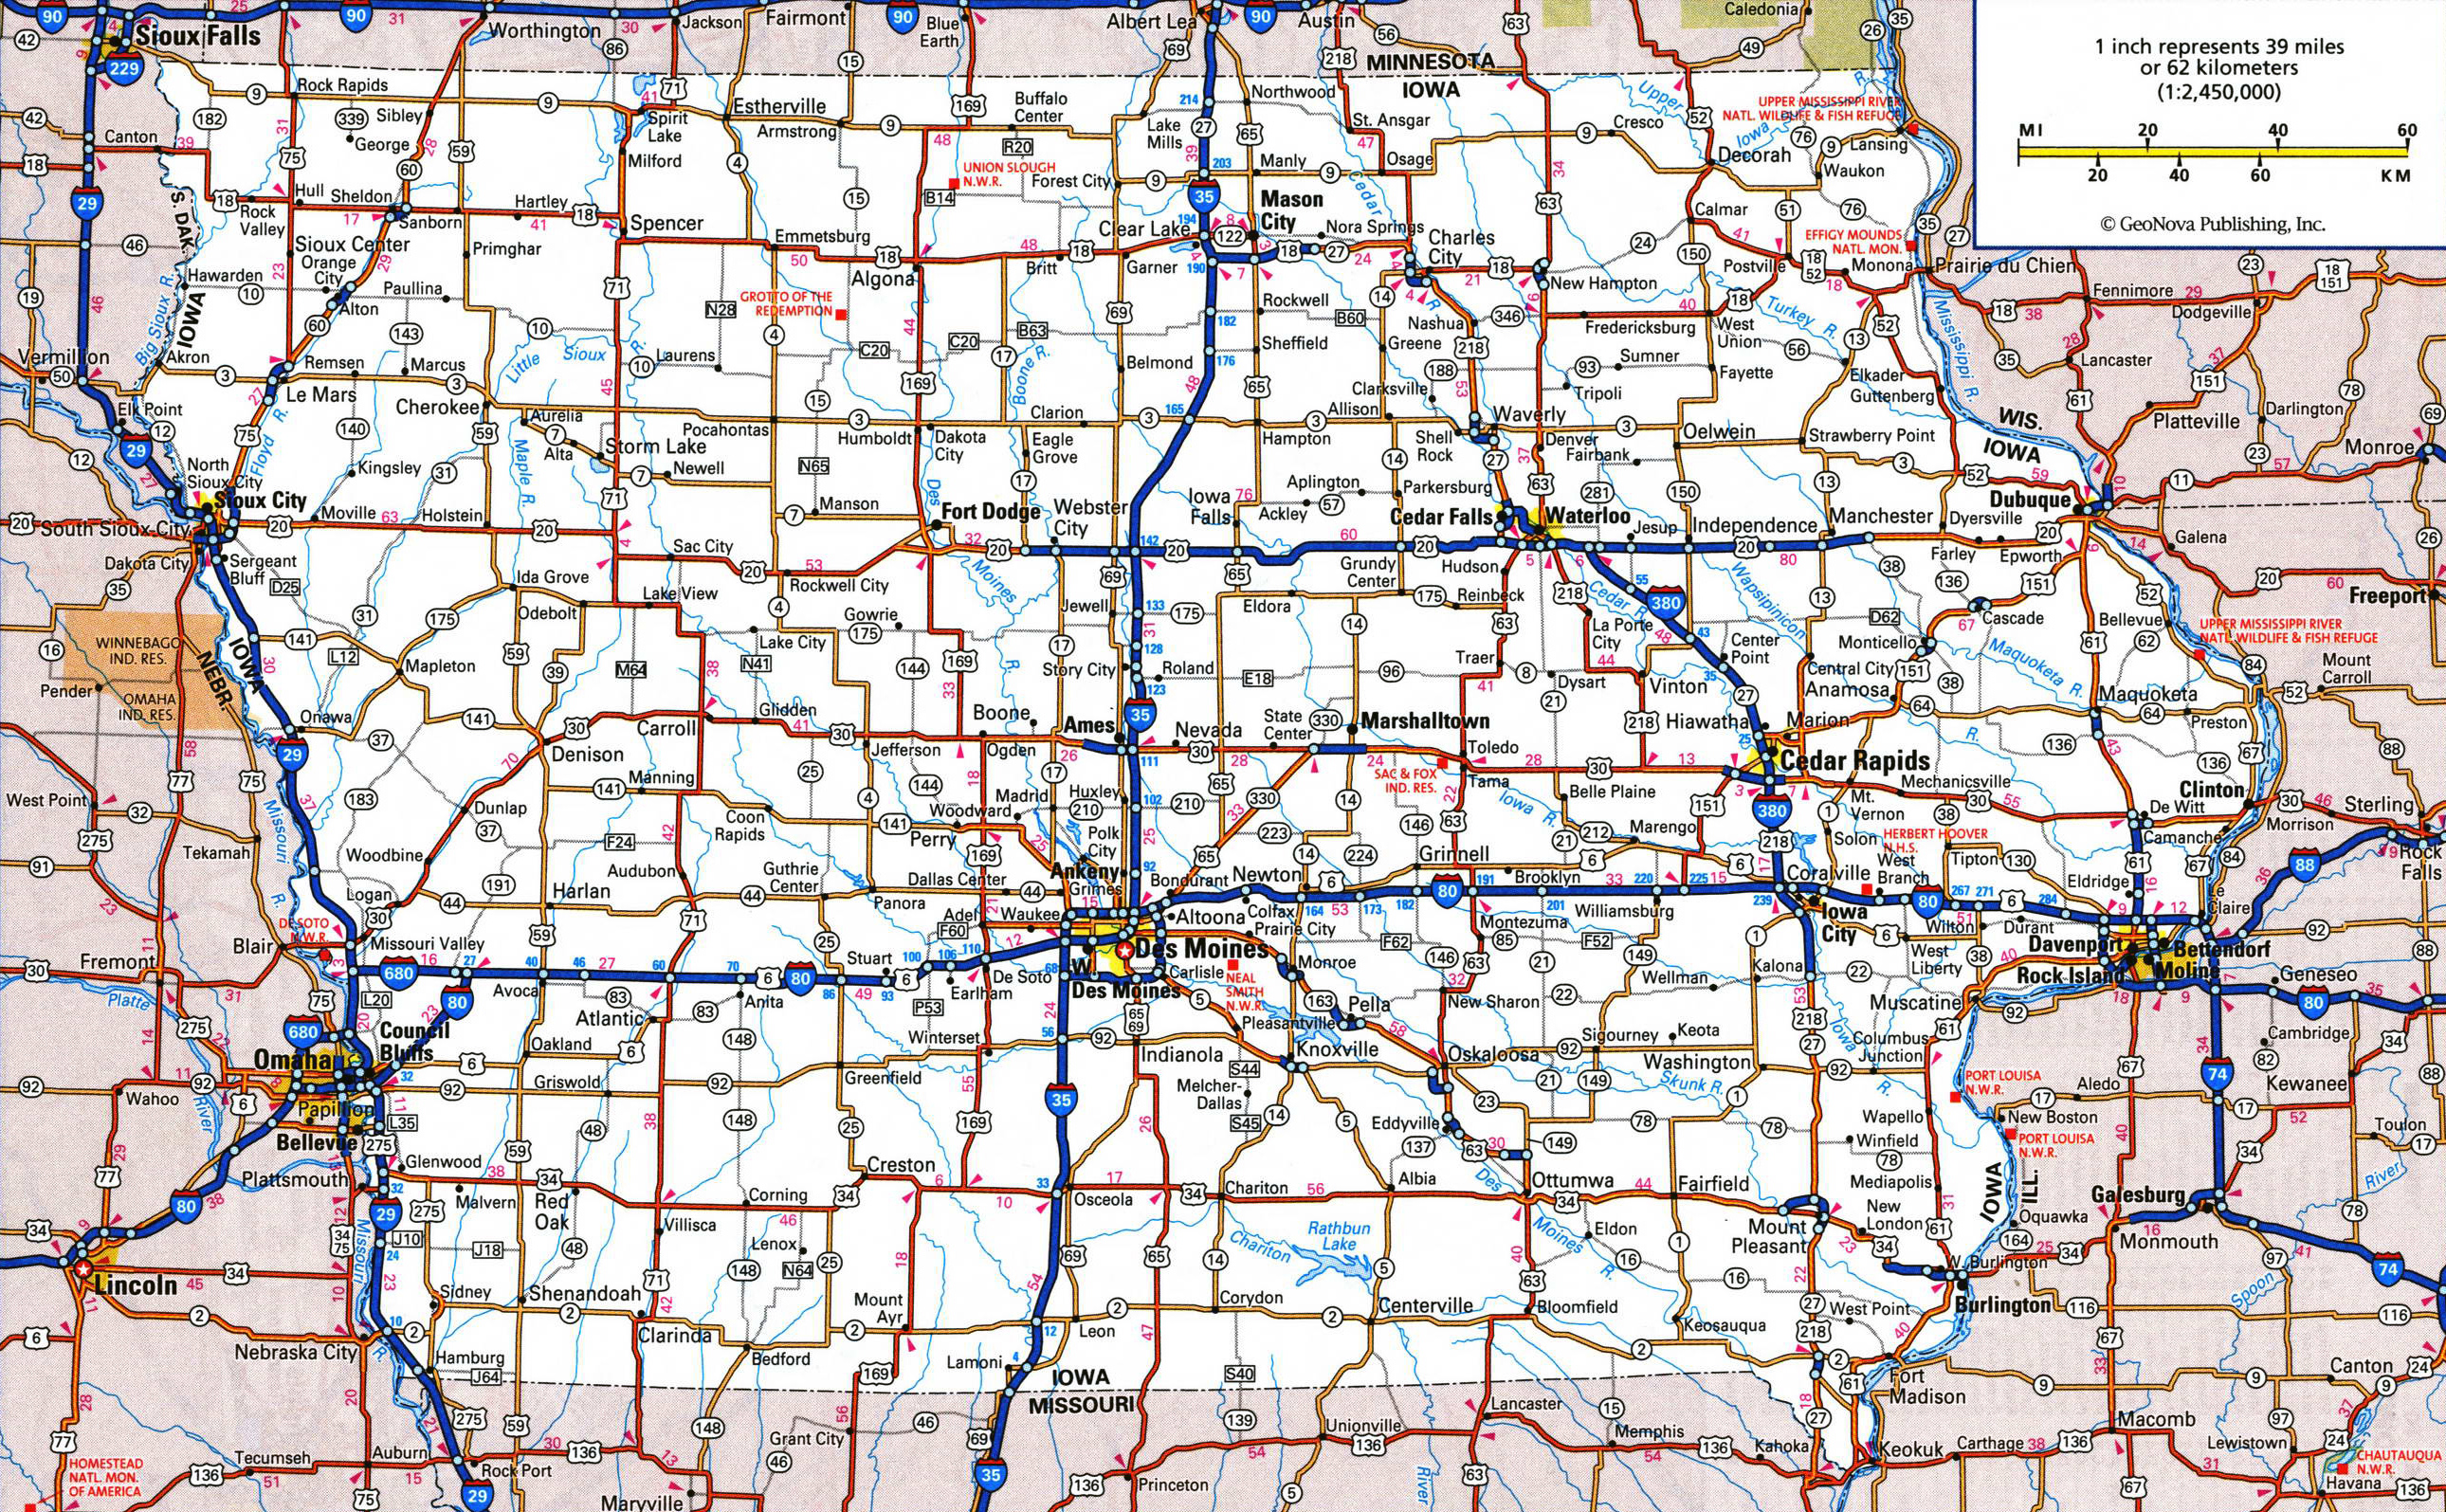 Large Detailed Roads And Highways Map Of Iowa State With All Cities